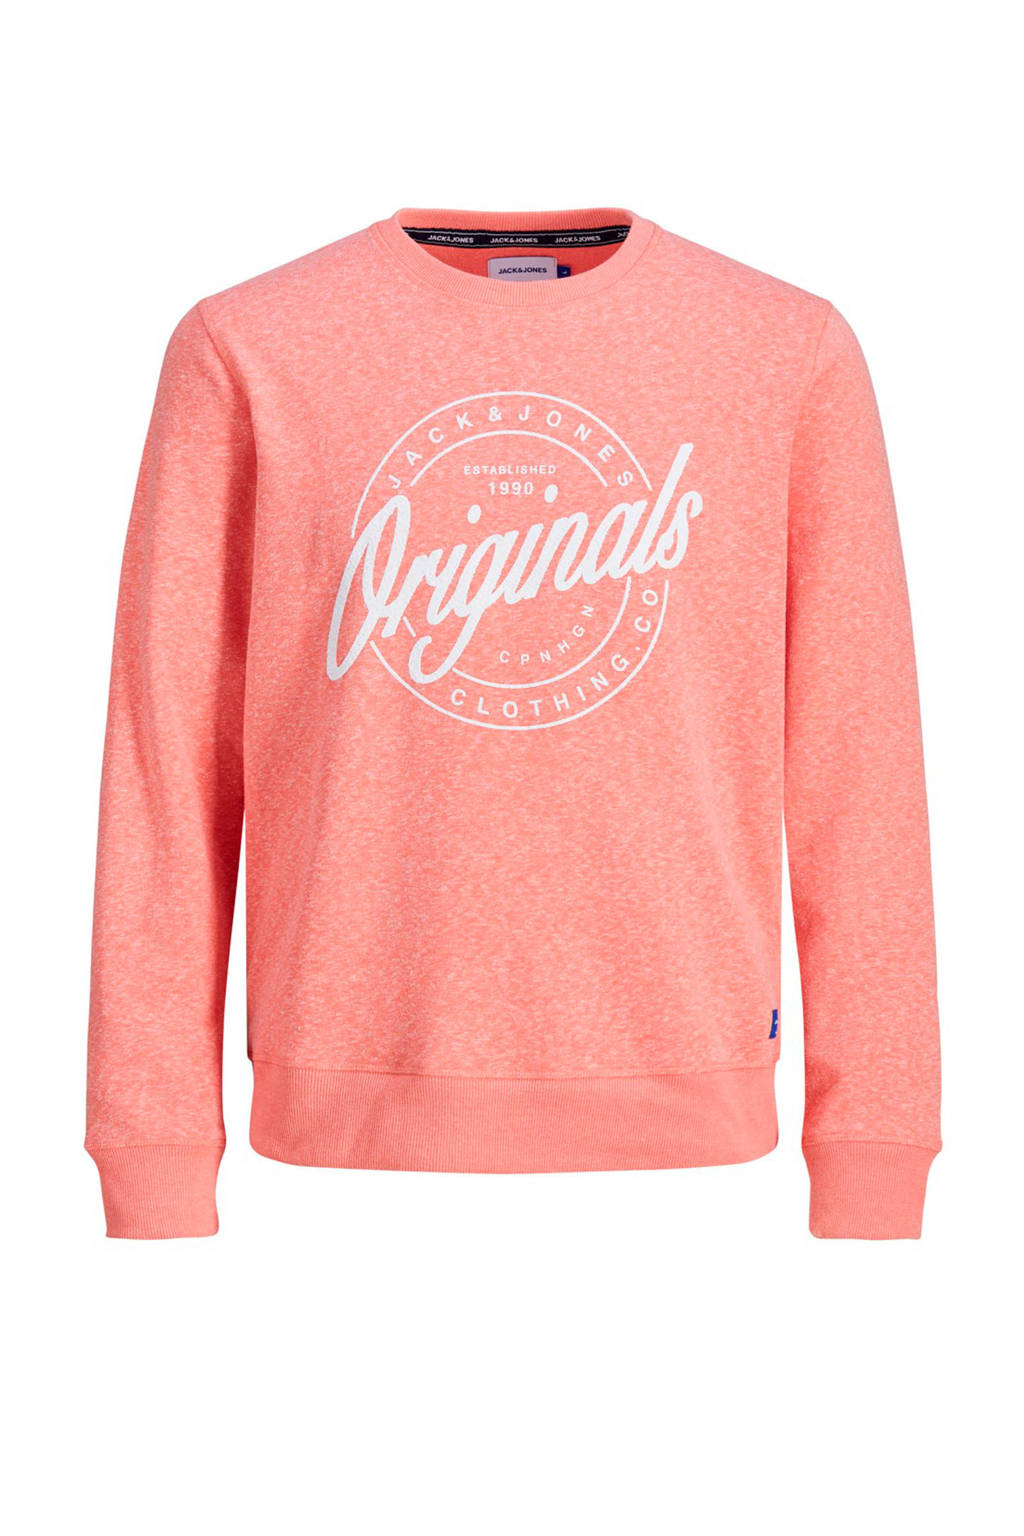 Jack & Jones Originals trui roze, Roze